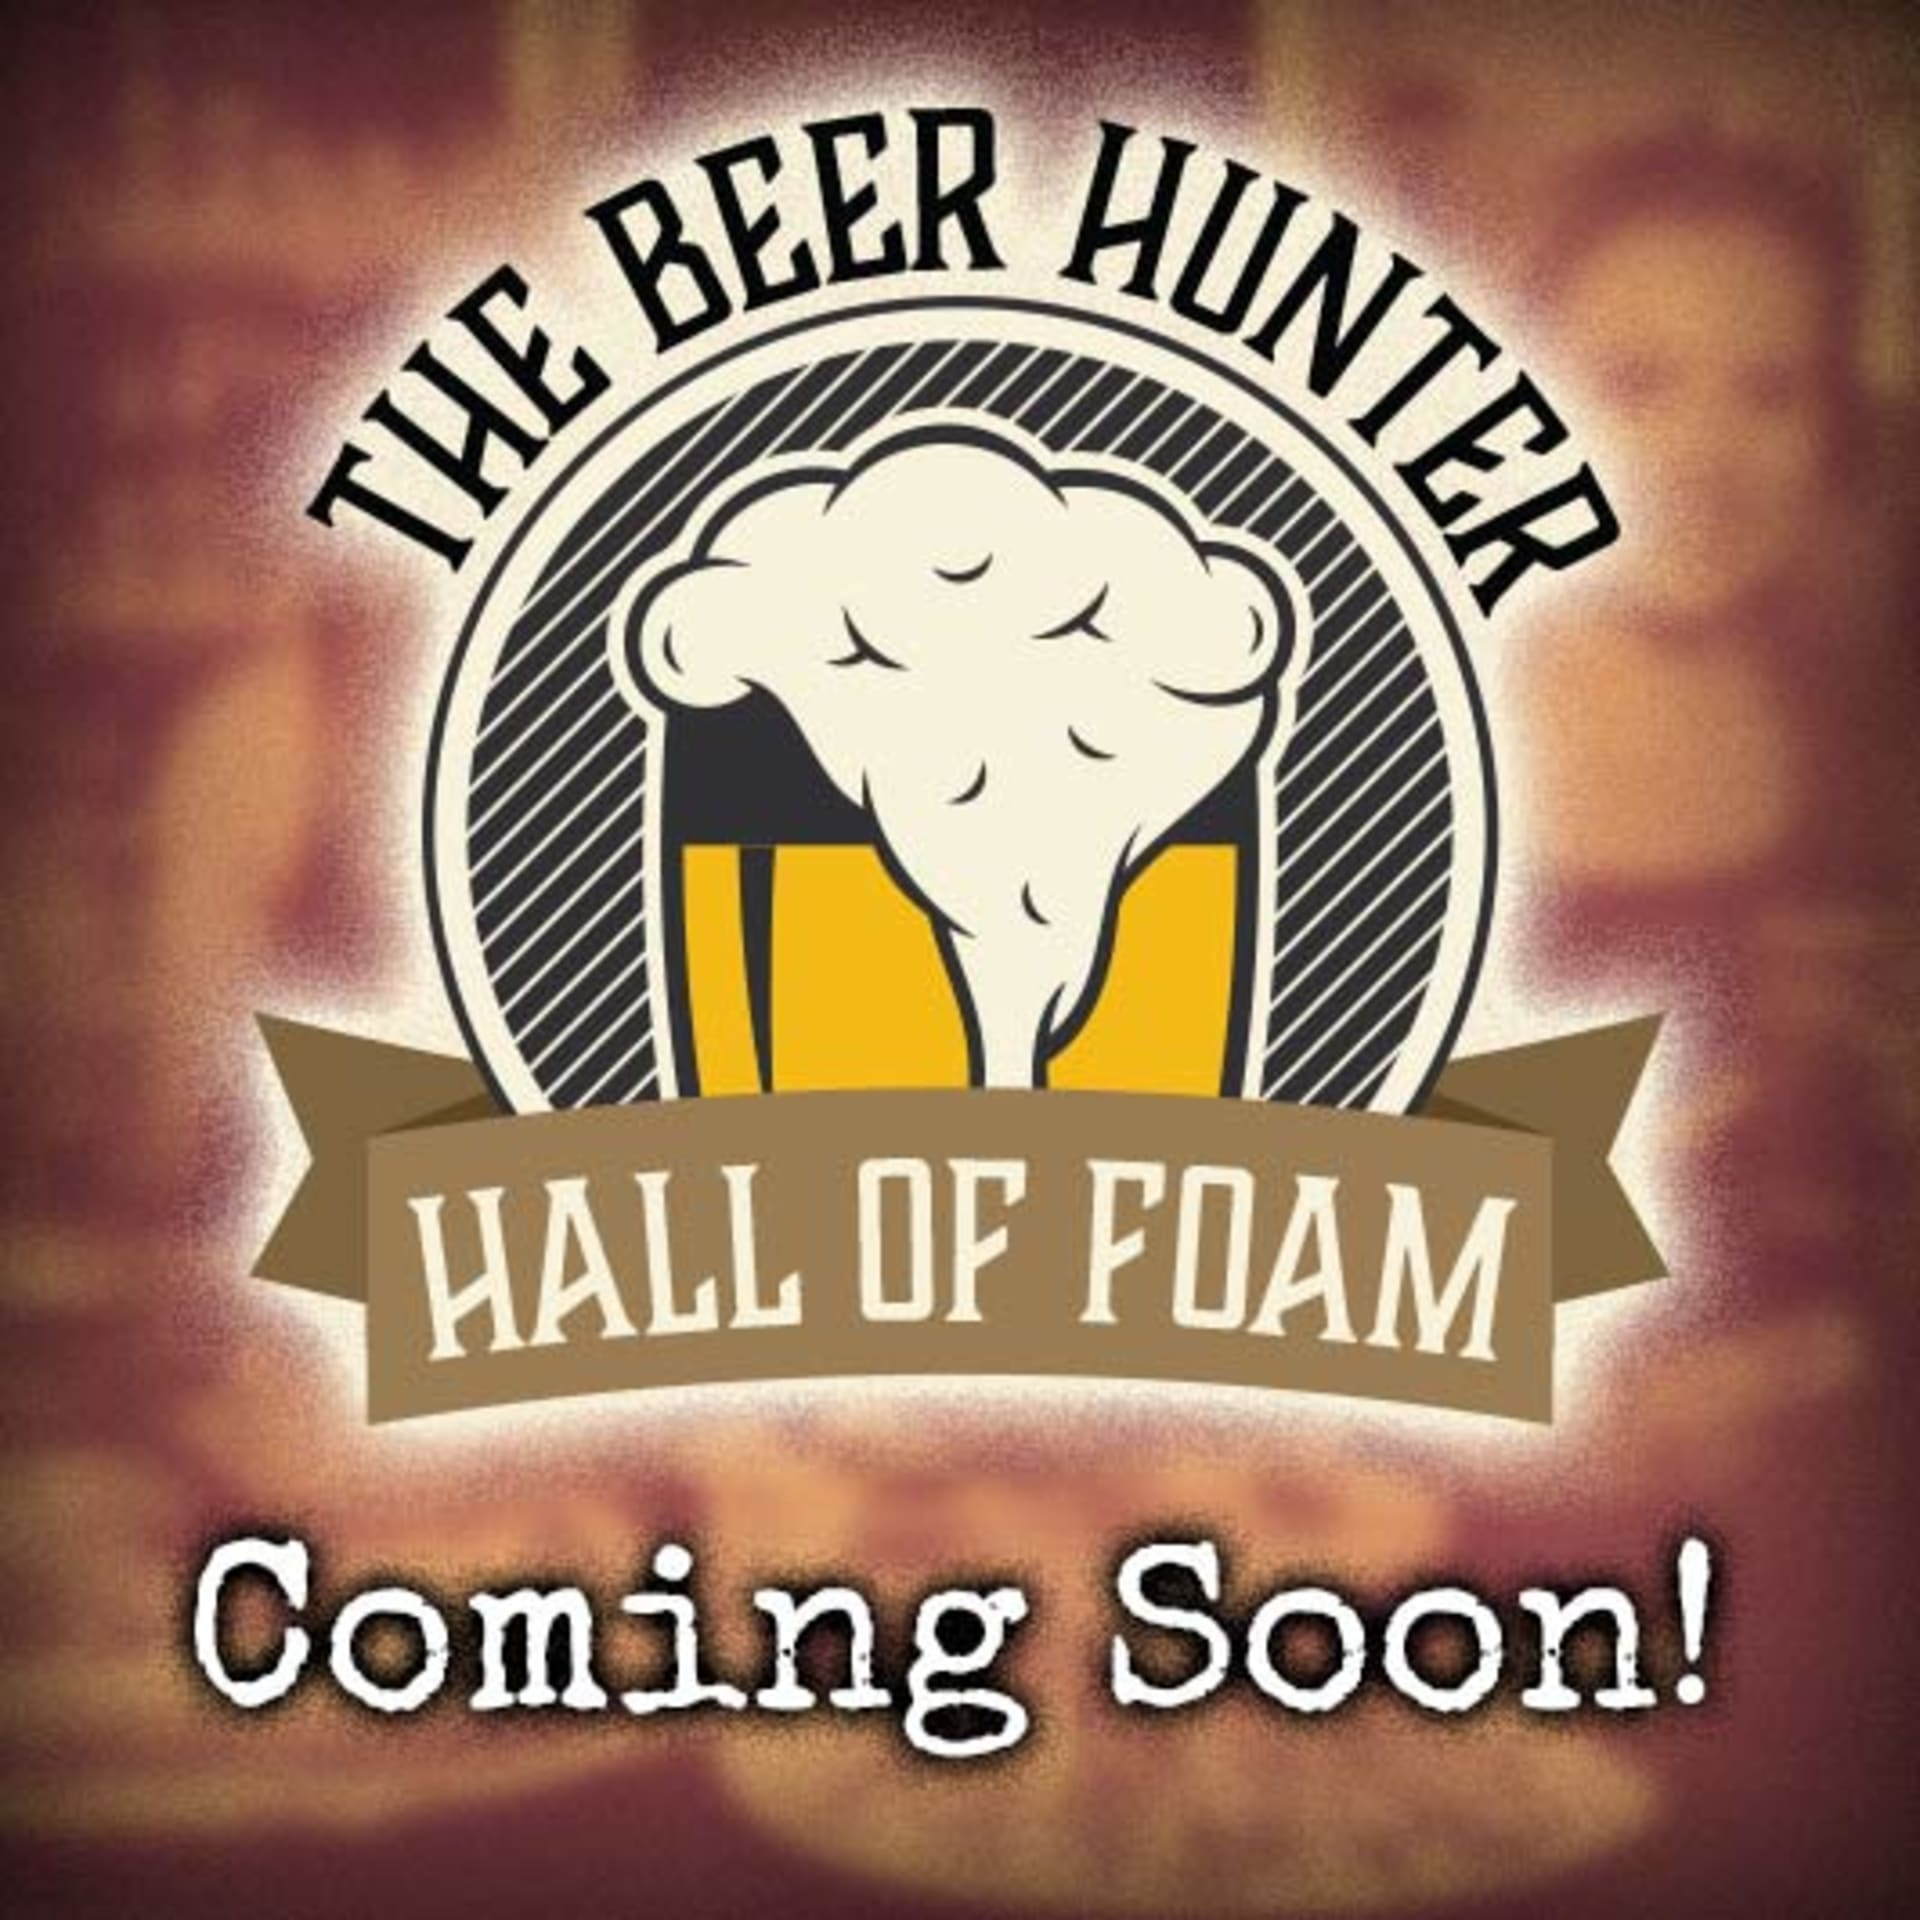 the beer hunter hall of fame coming soon